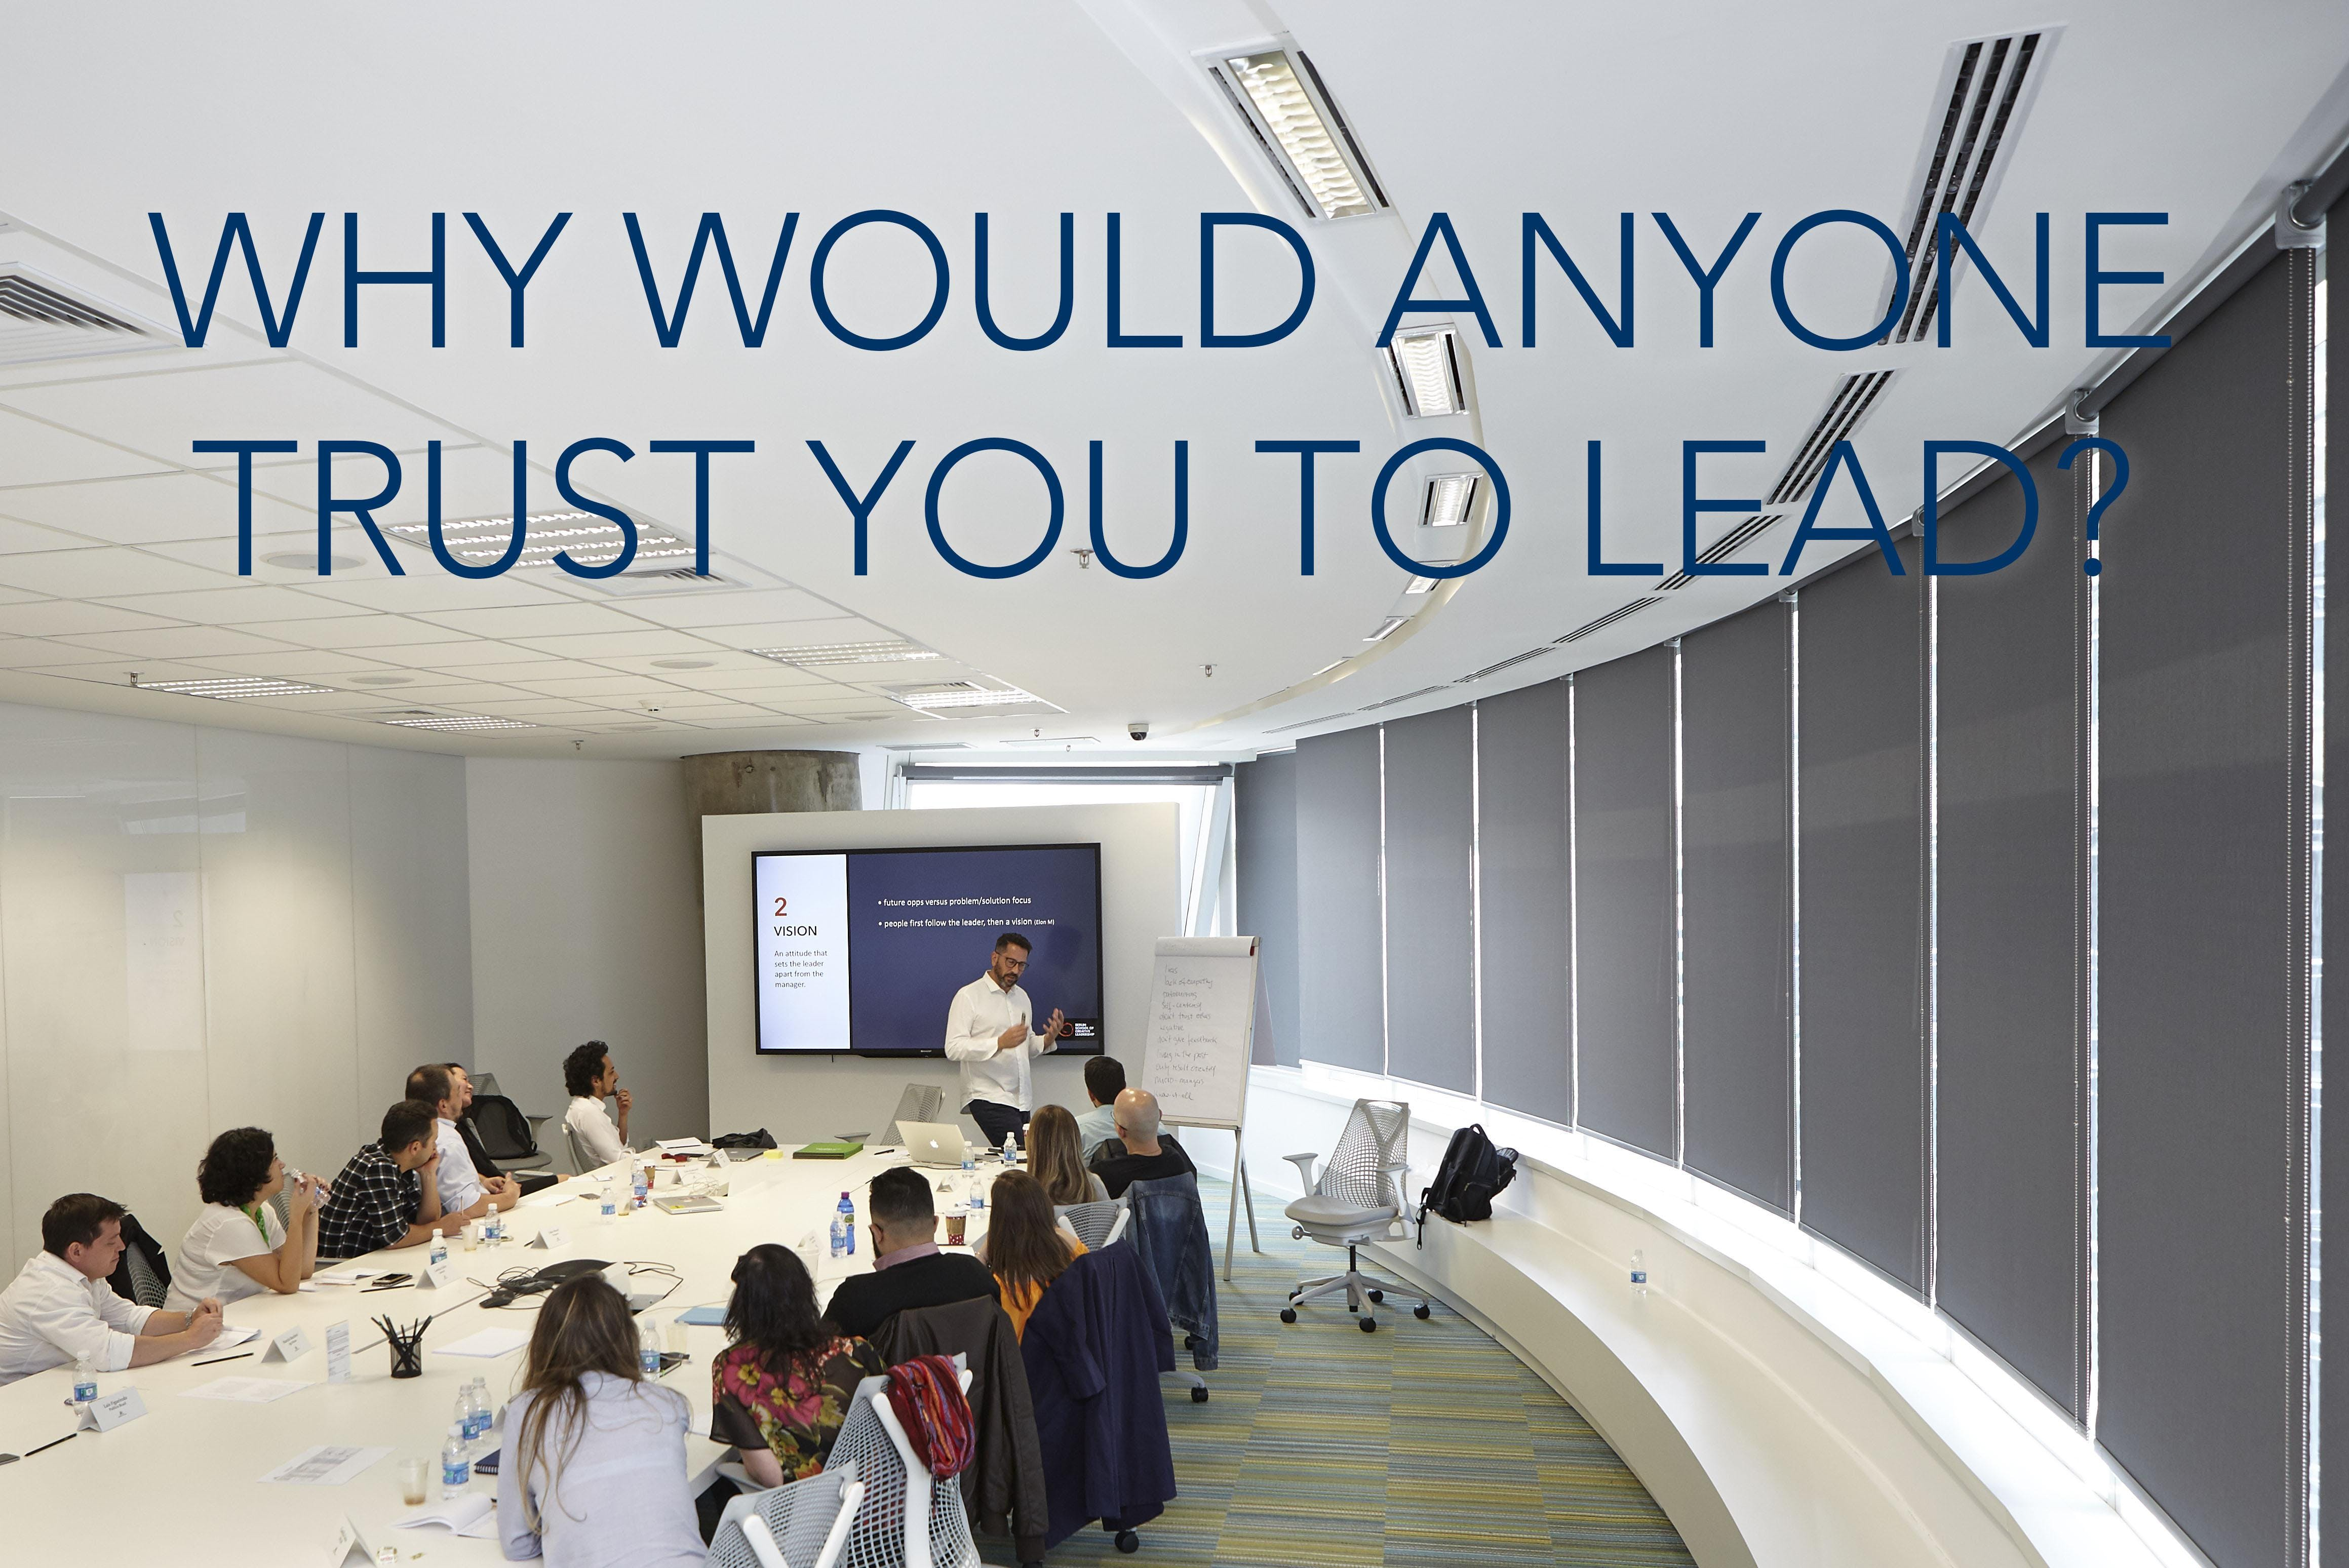 WHY WOULD ANYONE TRUST YOU TO LEAD?